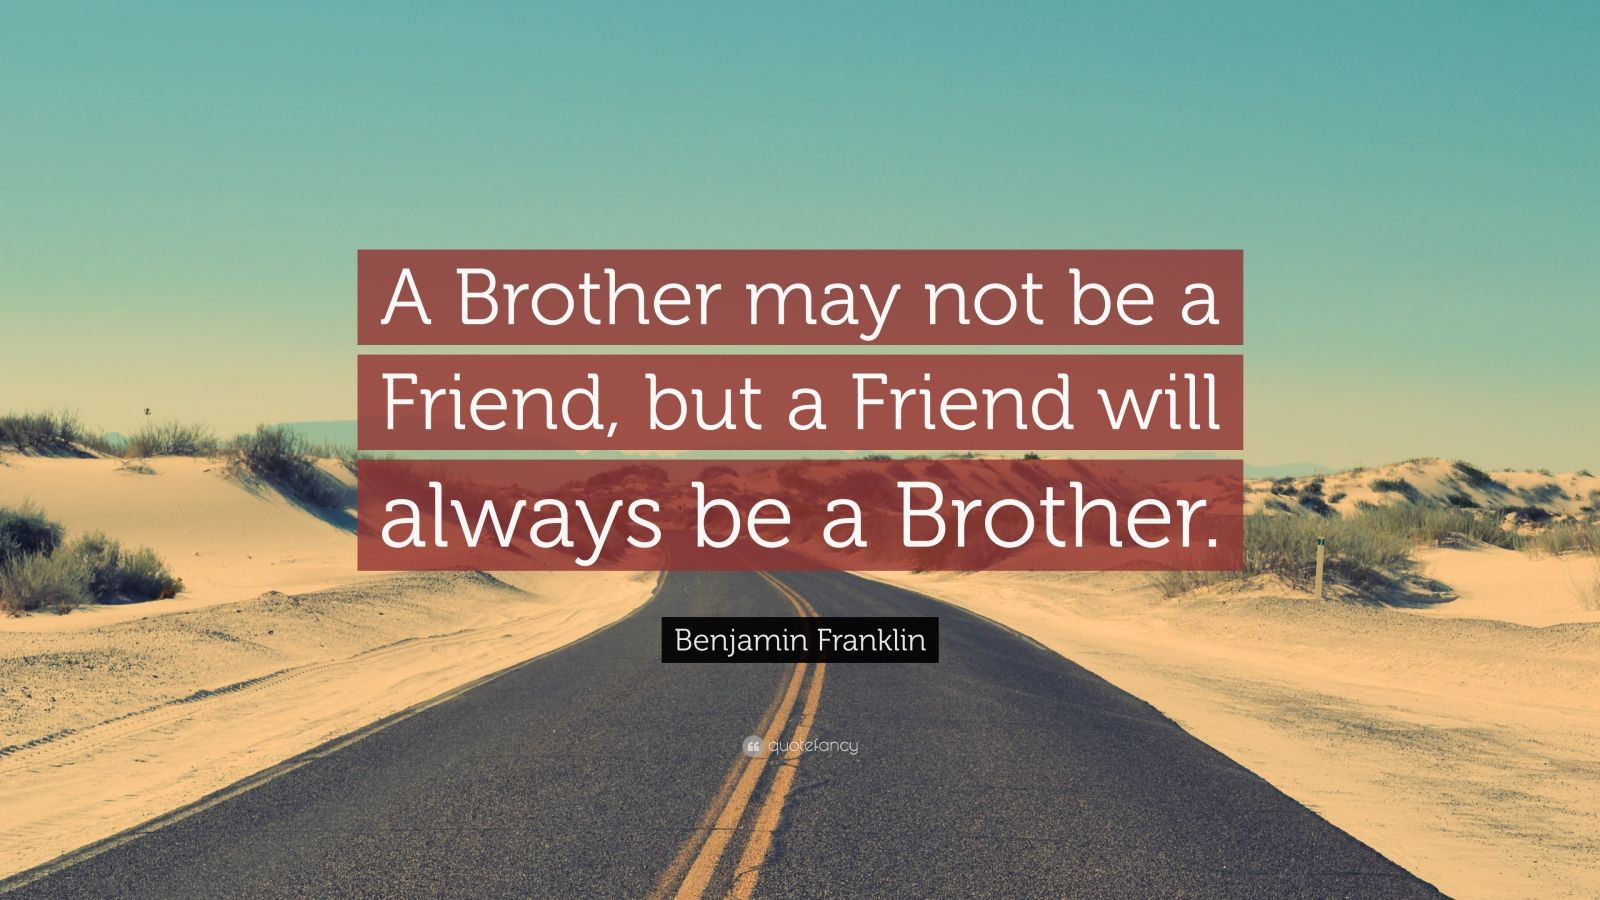 """Benjamin Franklin Quote: """"A Brother may not be a Friend, but a Friend will always be a Brother."""""""